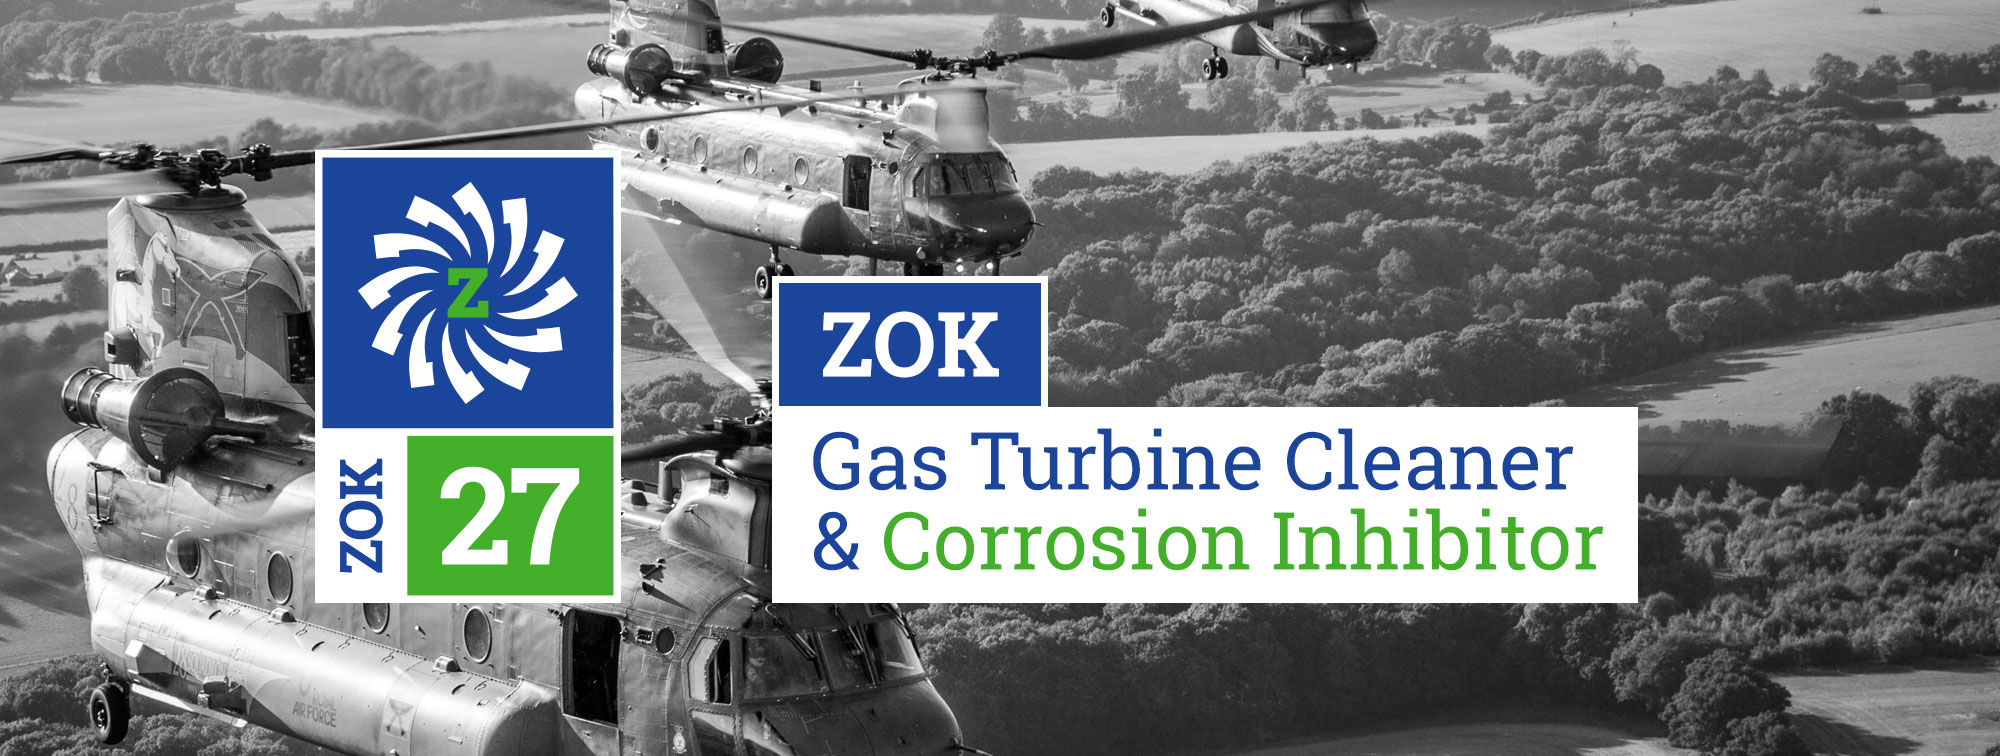 Zok 27 Gas Turbine Cleaner and Corrosion Inhibitor